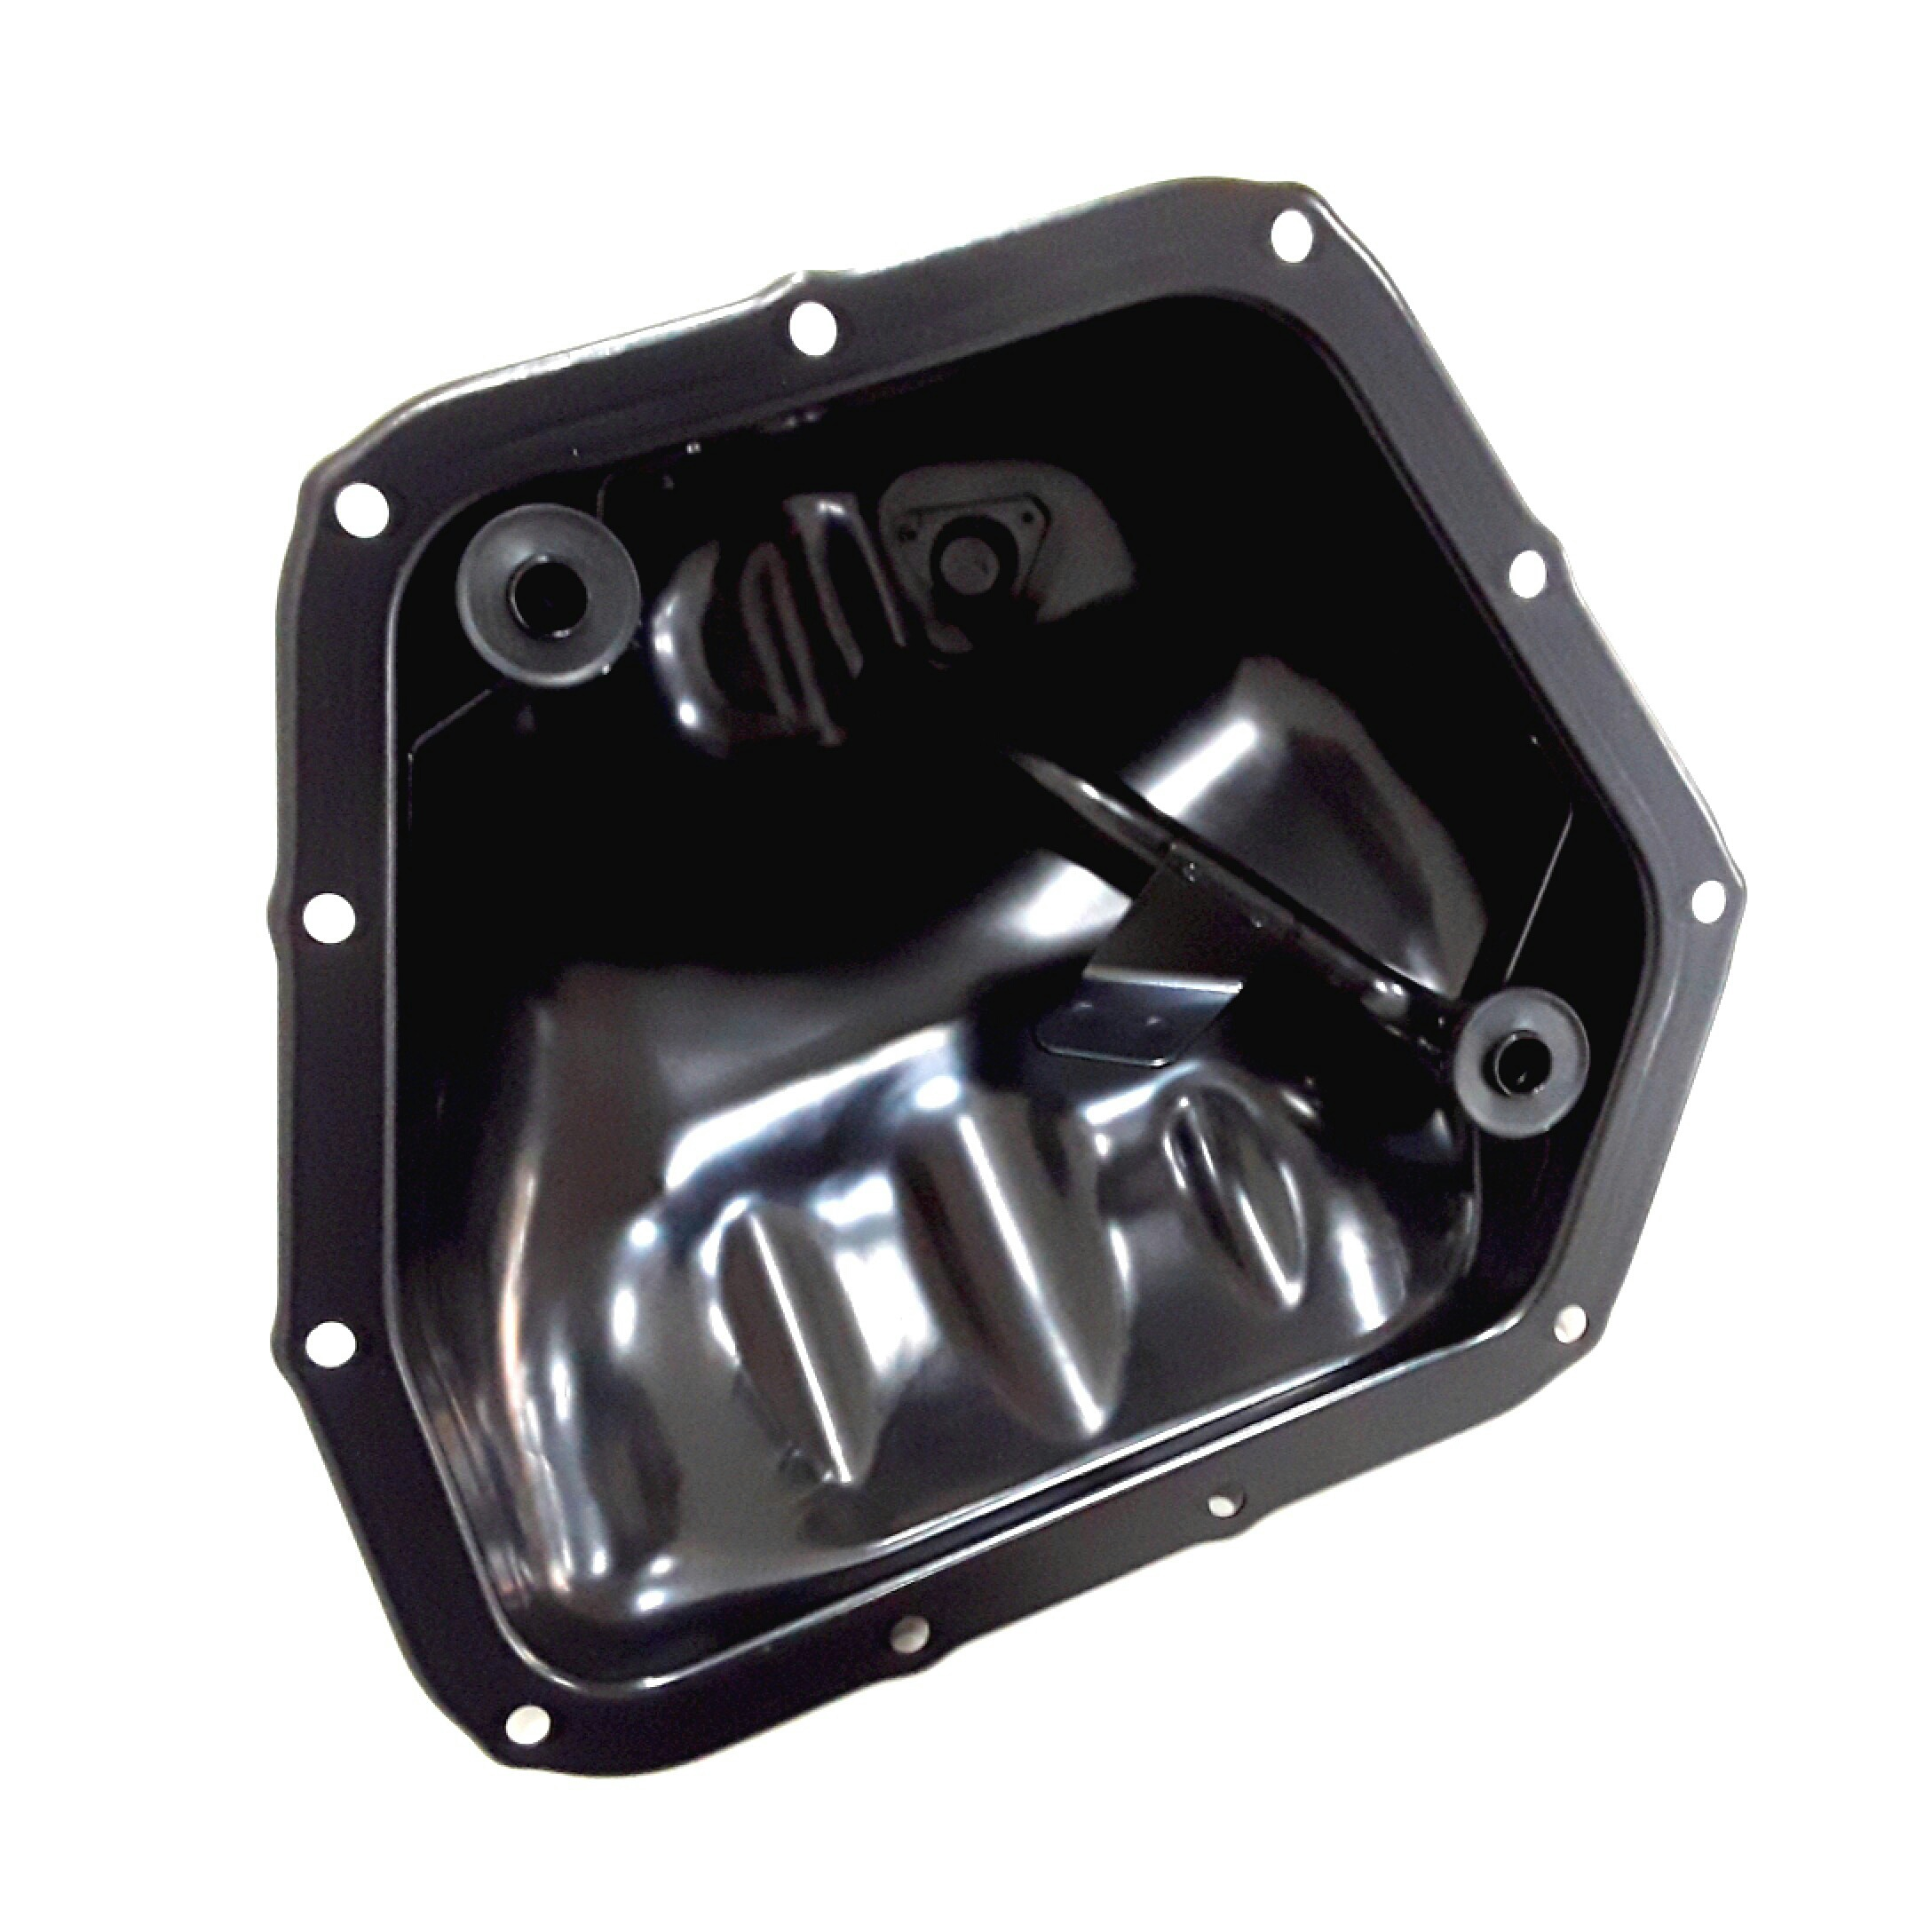 2014 subaru forester oil pan assembly engine cooling for Subaru forester motor oil